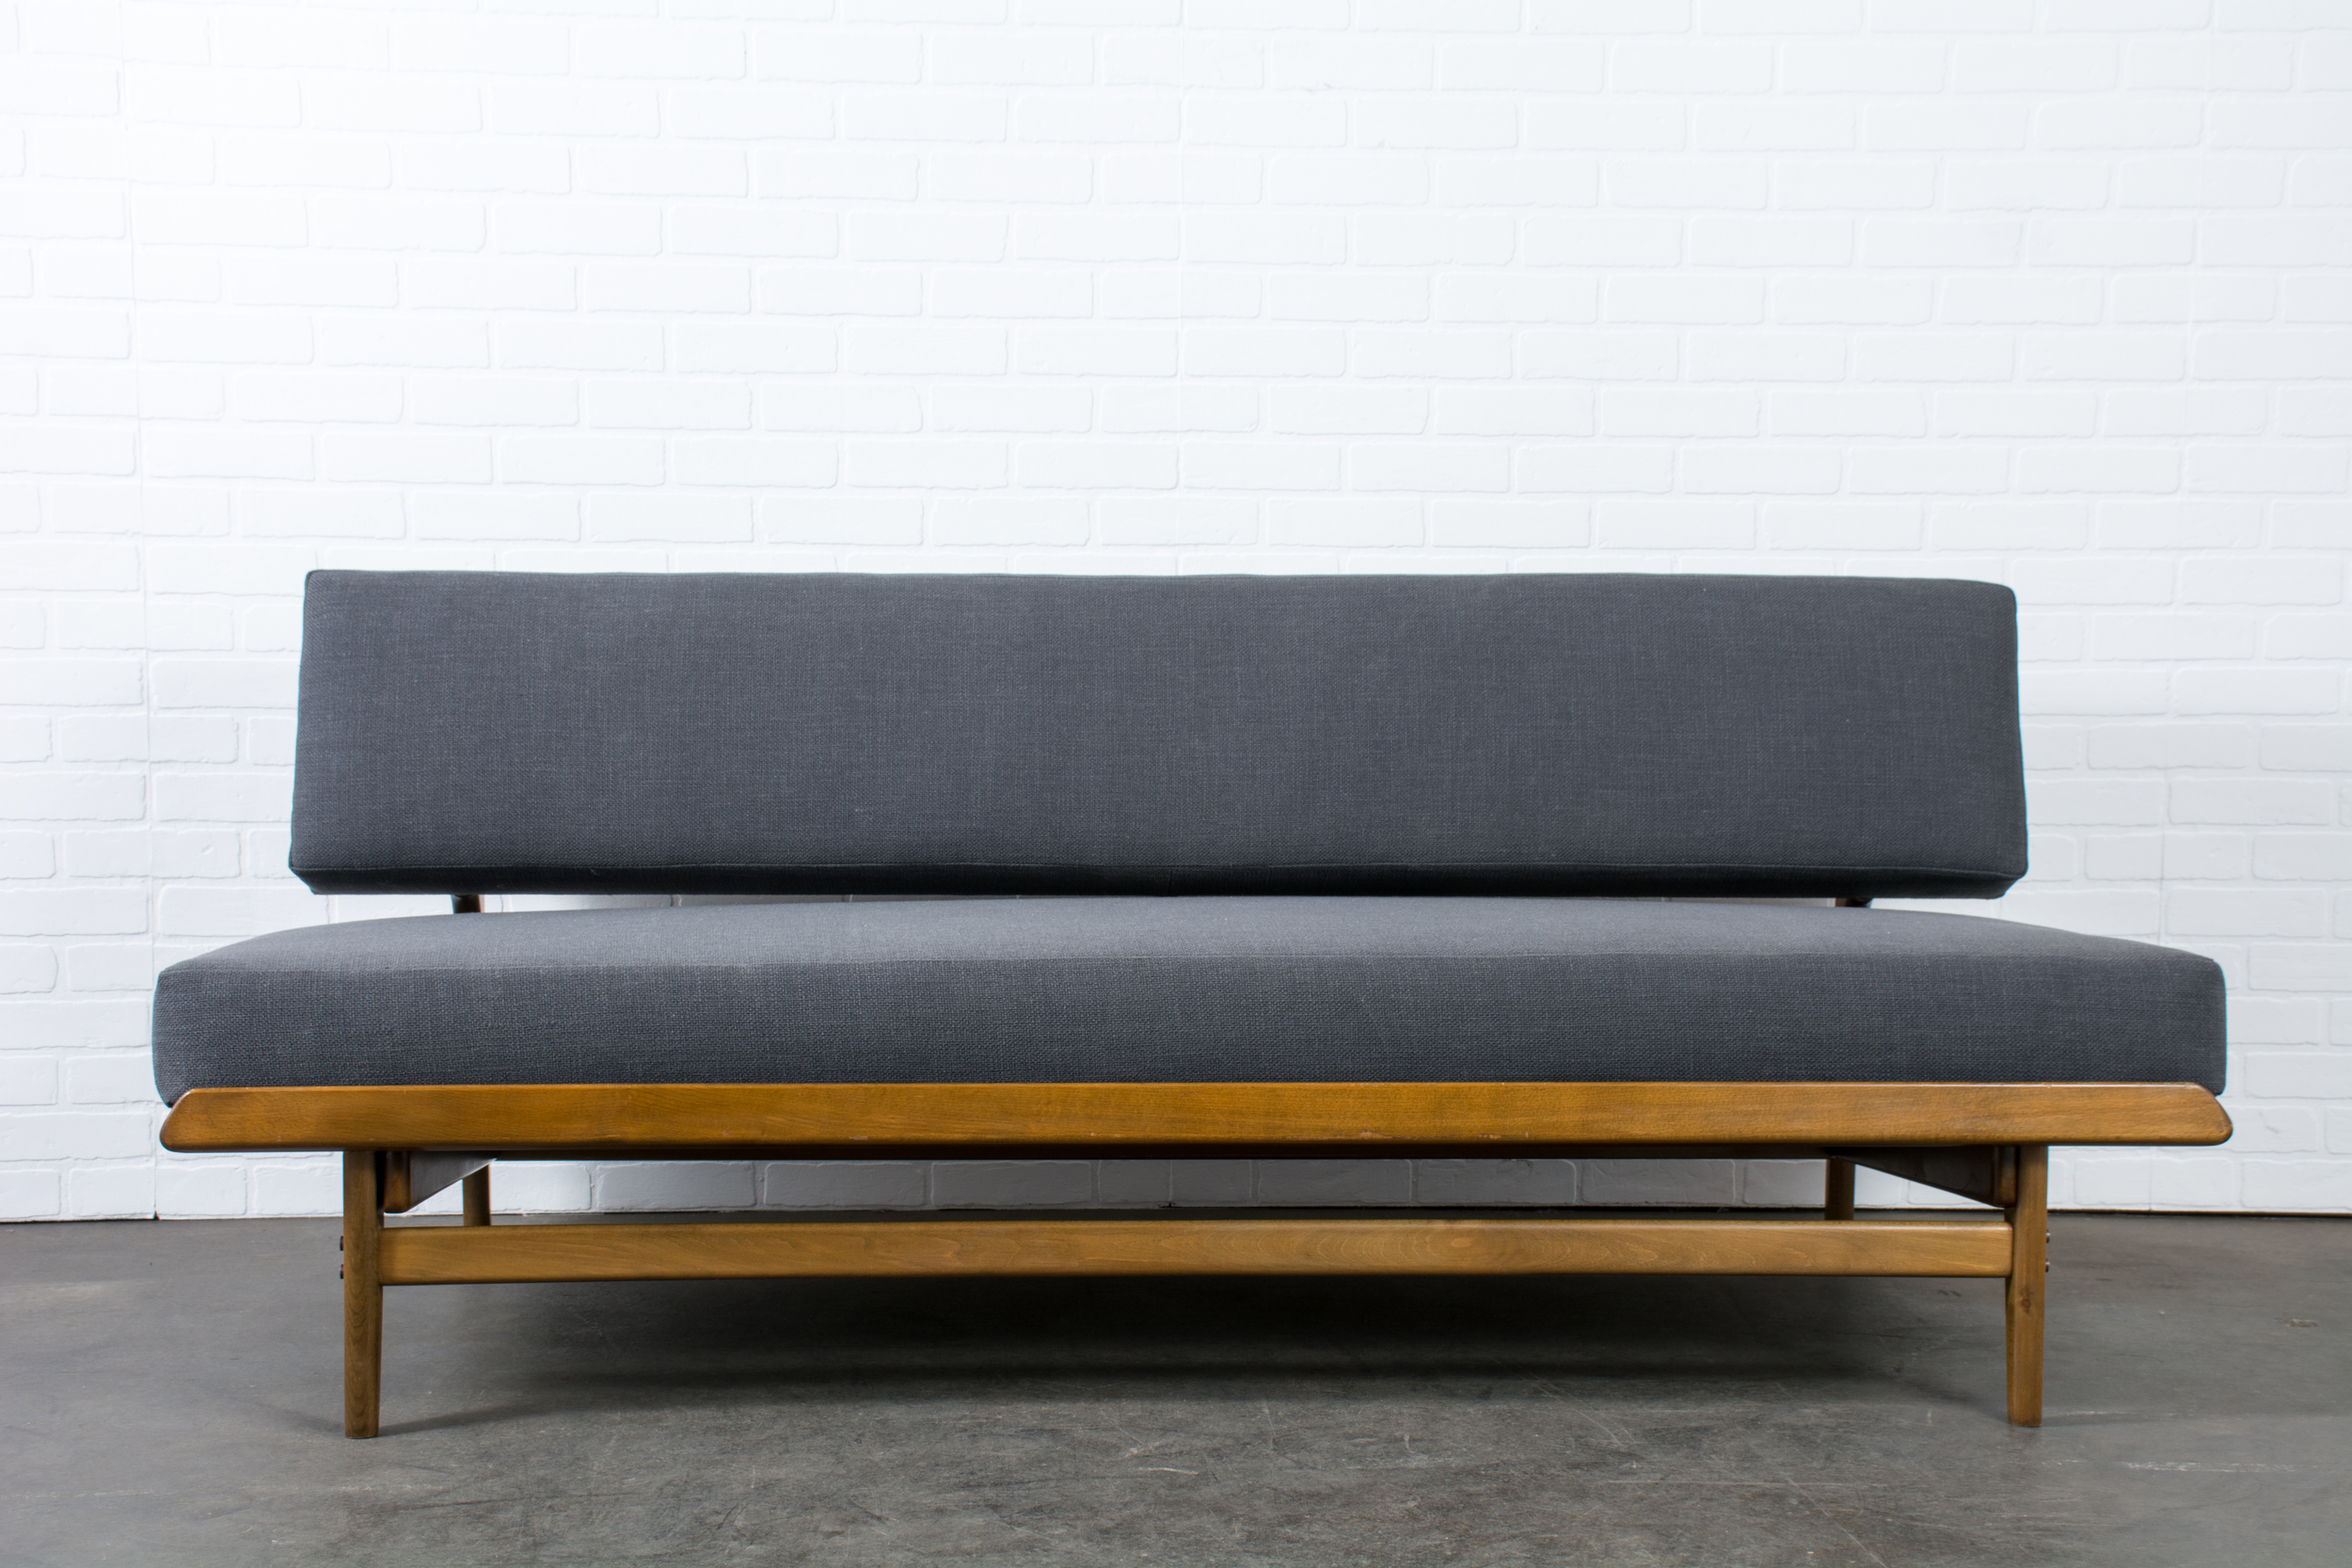 Copy of Vintage Mid-Century Daybed by Karl-Erik Ekselius for Dux